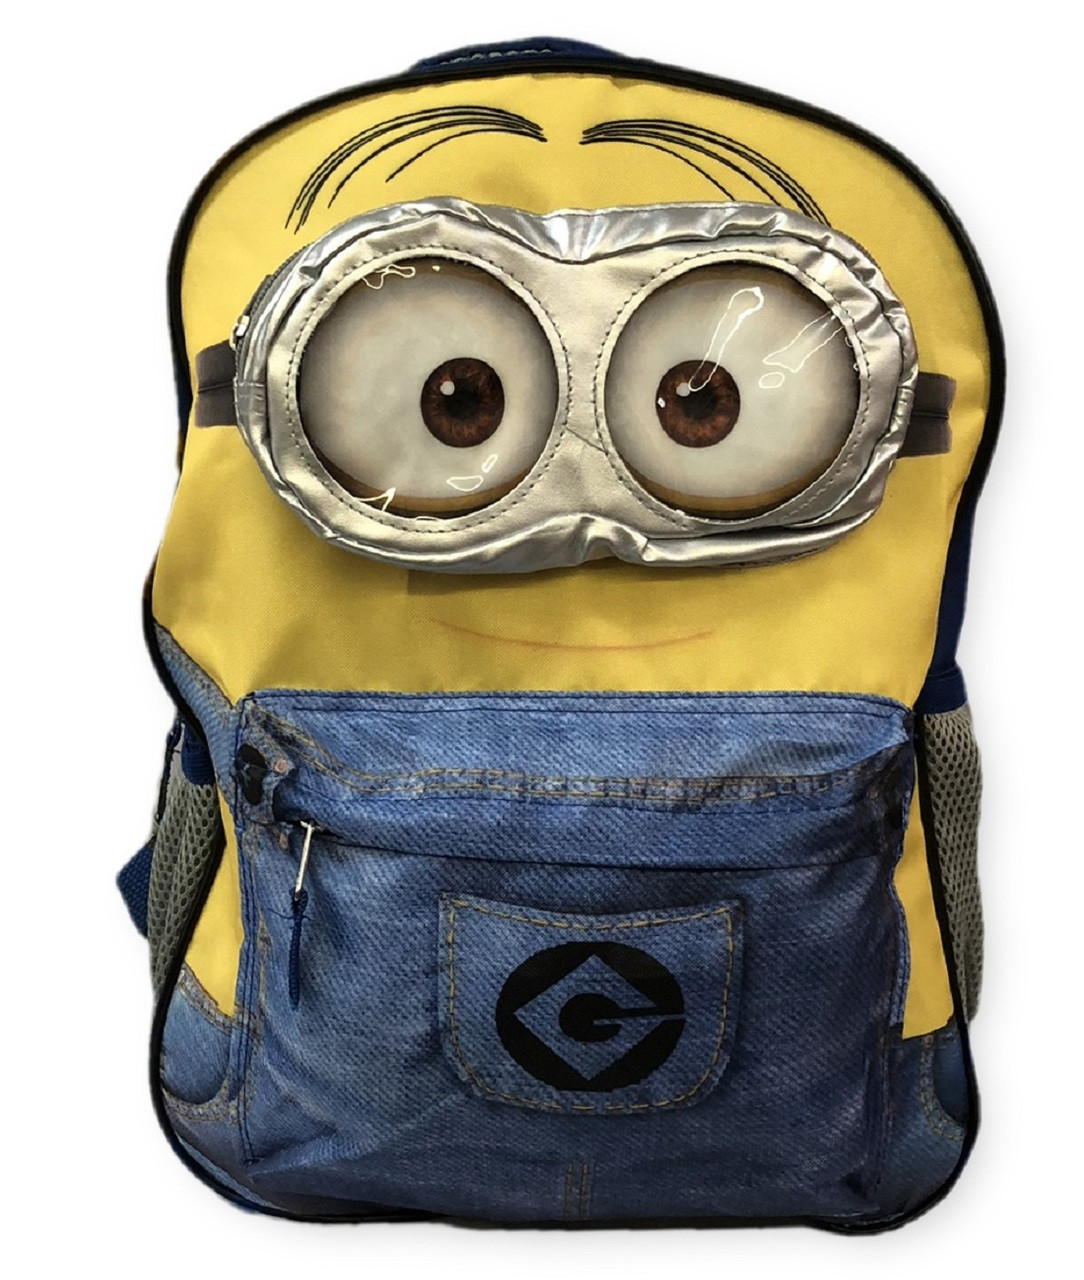 Backpack - Minions - Large 16 Inch - Blue Pants